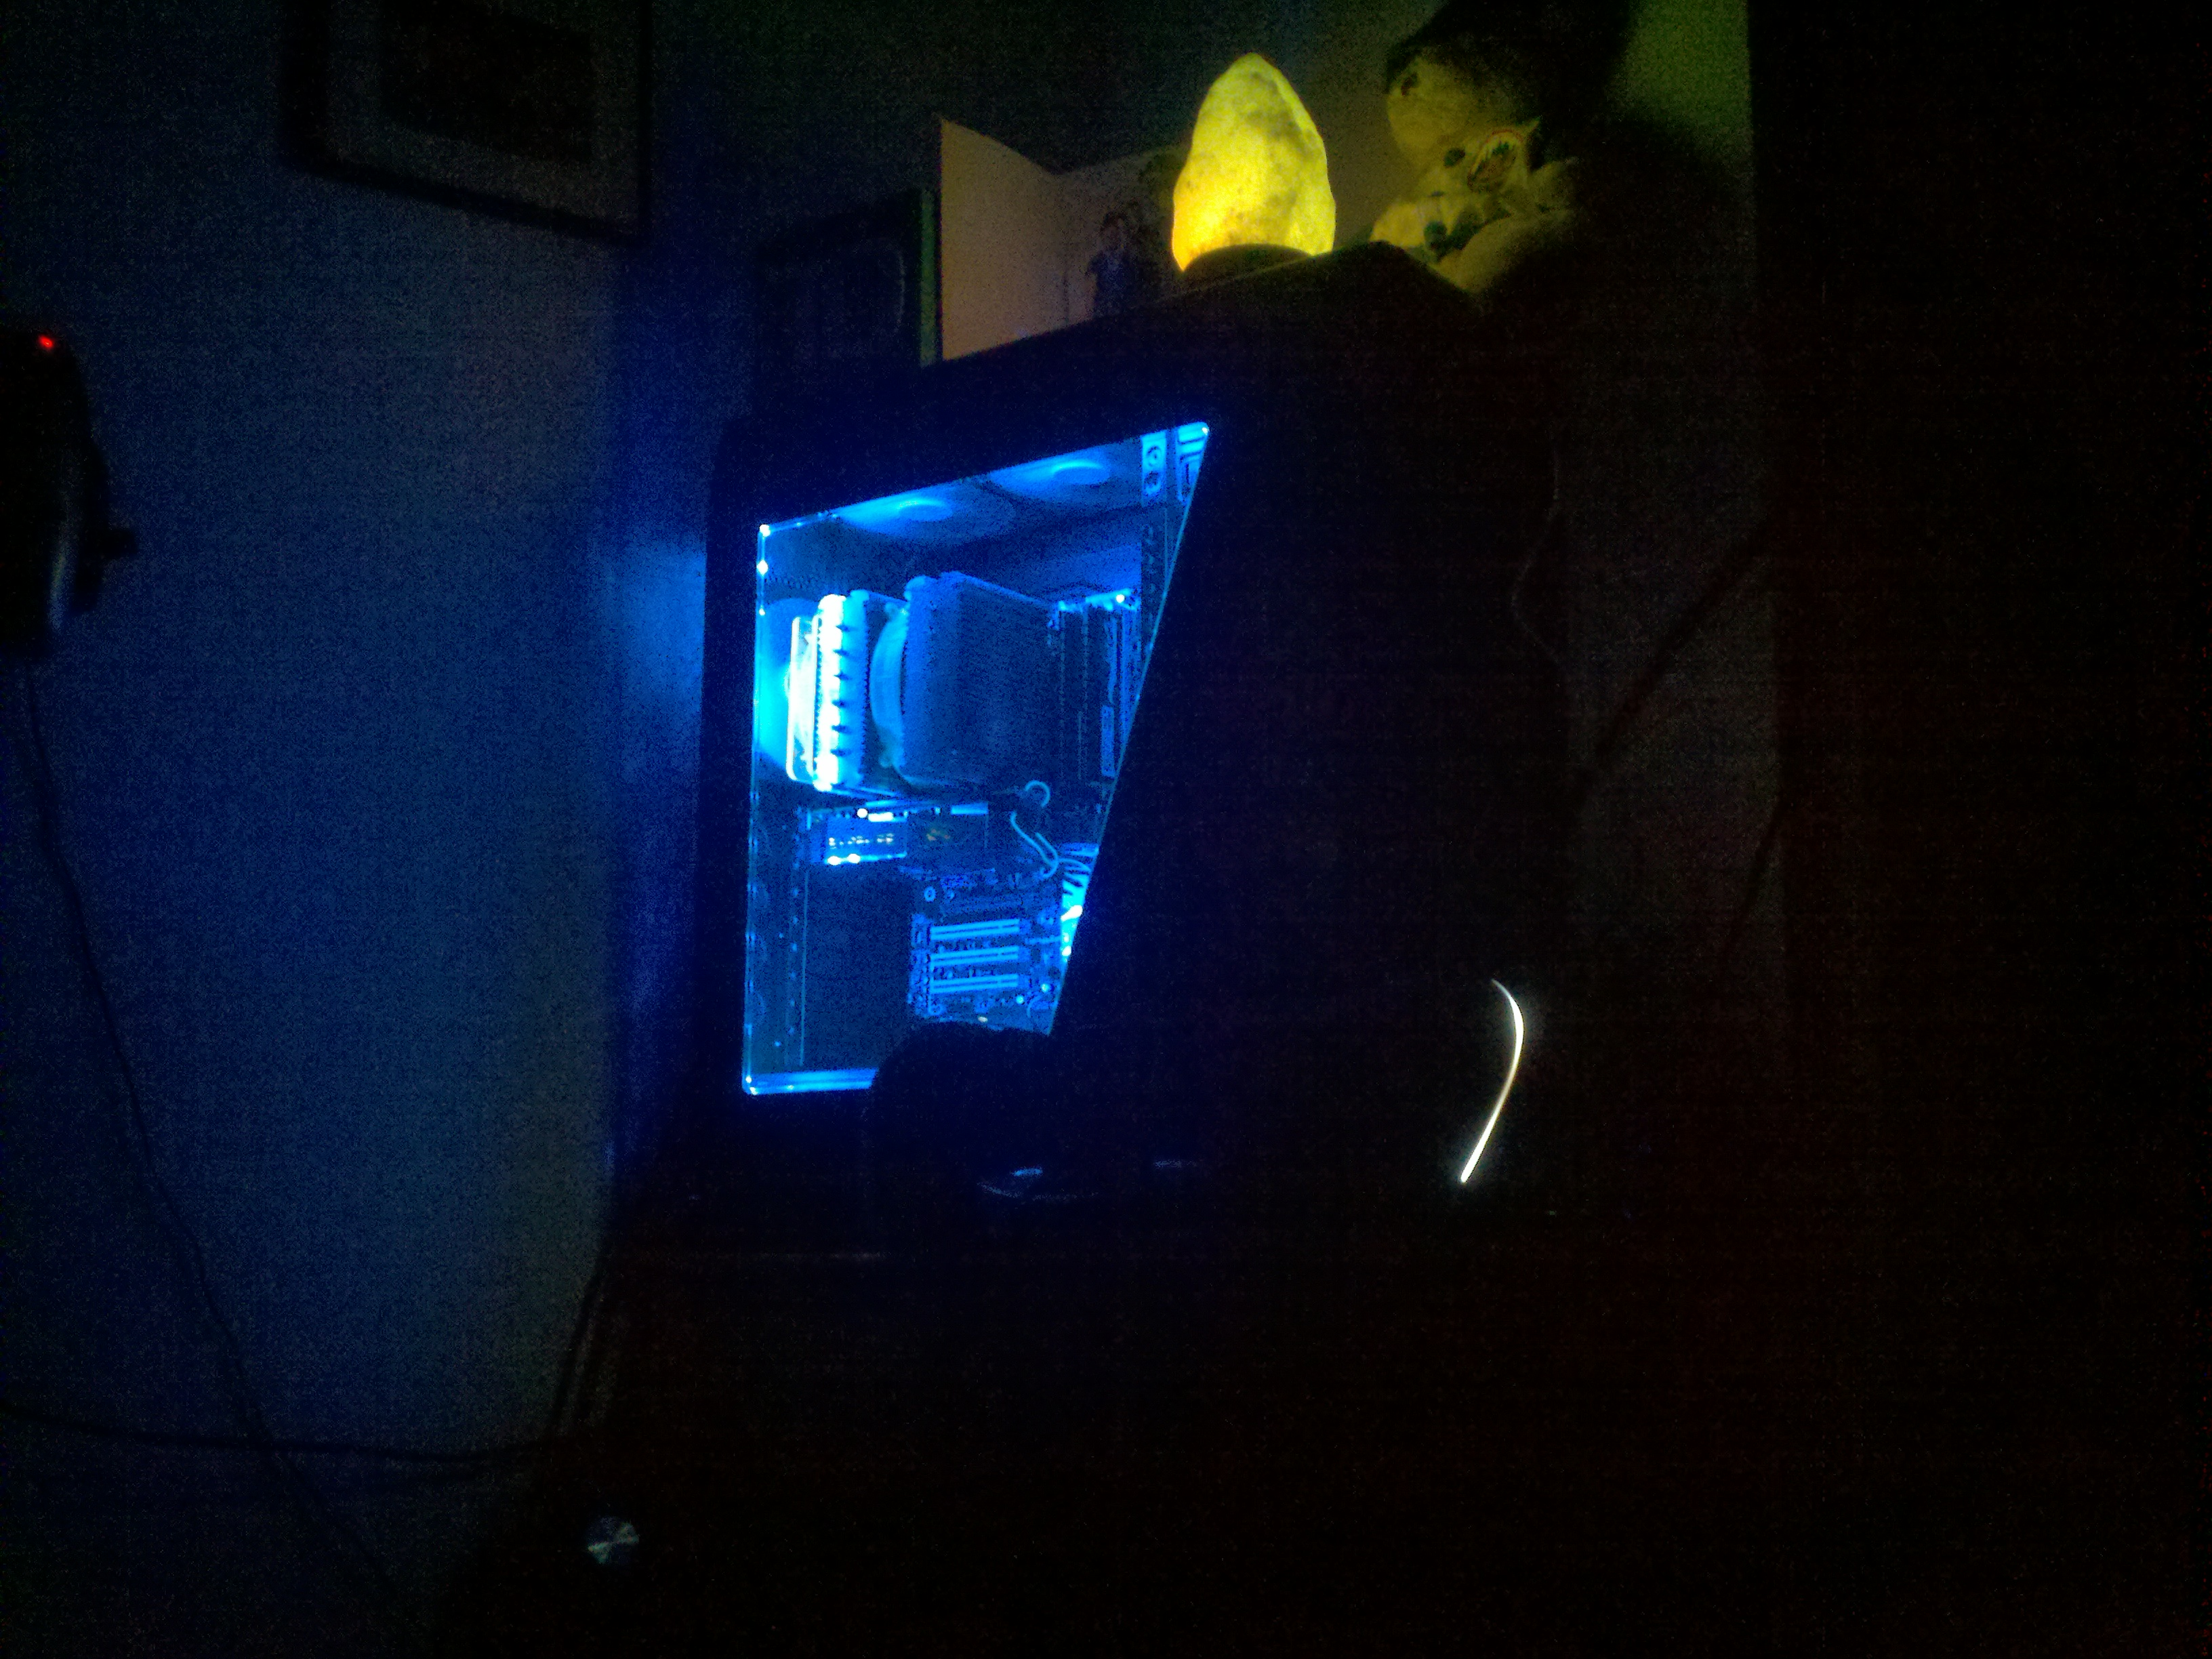 My new setup NZXT 810 with RGB led strip with remote to change colors. 3.8 w/ HT i7 870